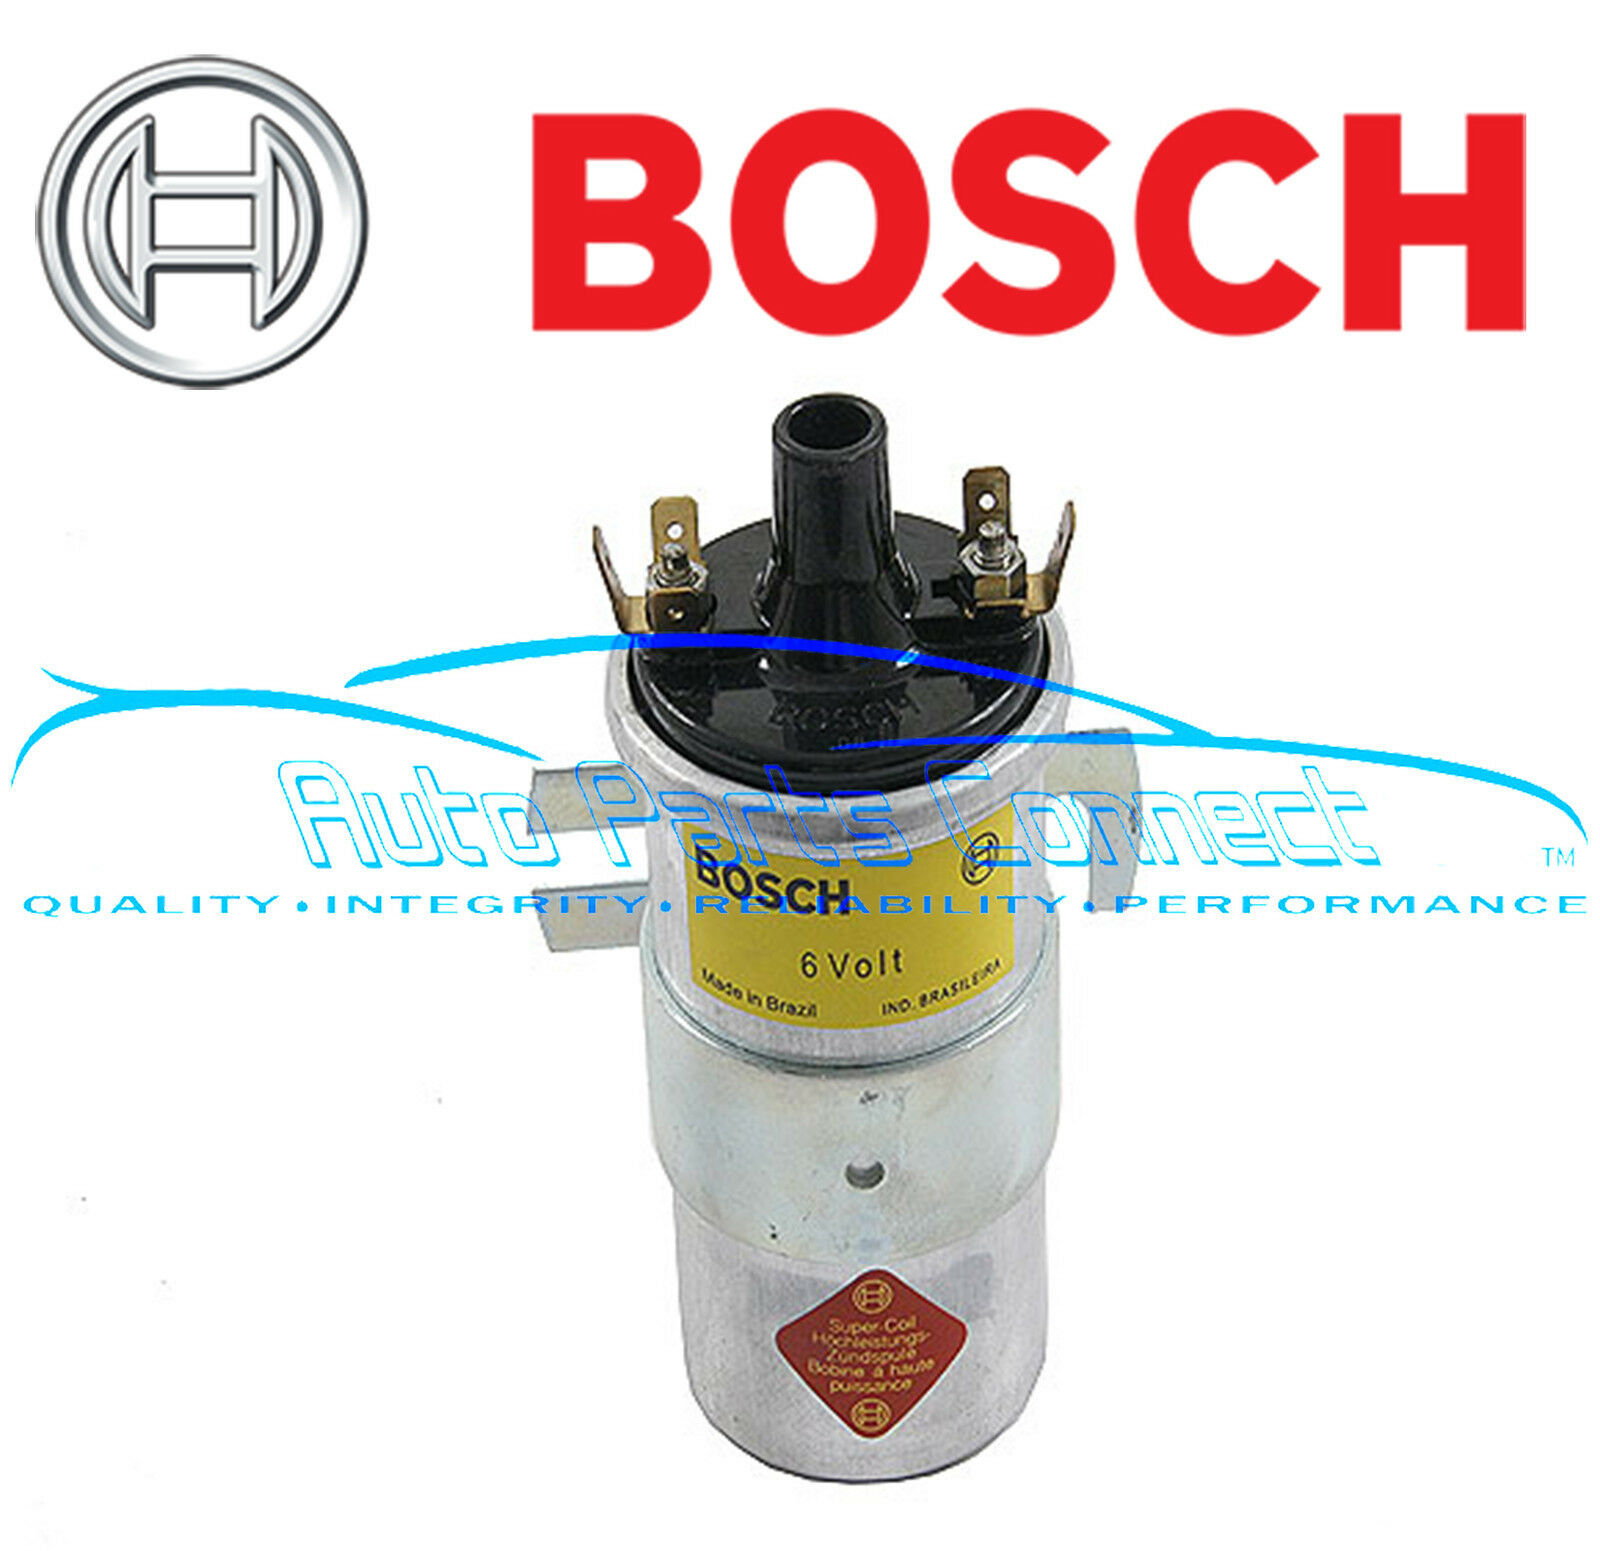 Bosch Ignition Coil 6v 6 Volt For Porsche 356 Volkswagen Vw Bug Bus On Plug Wiring Diagram 1 Of 1free Shipping